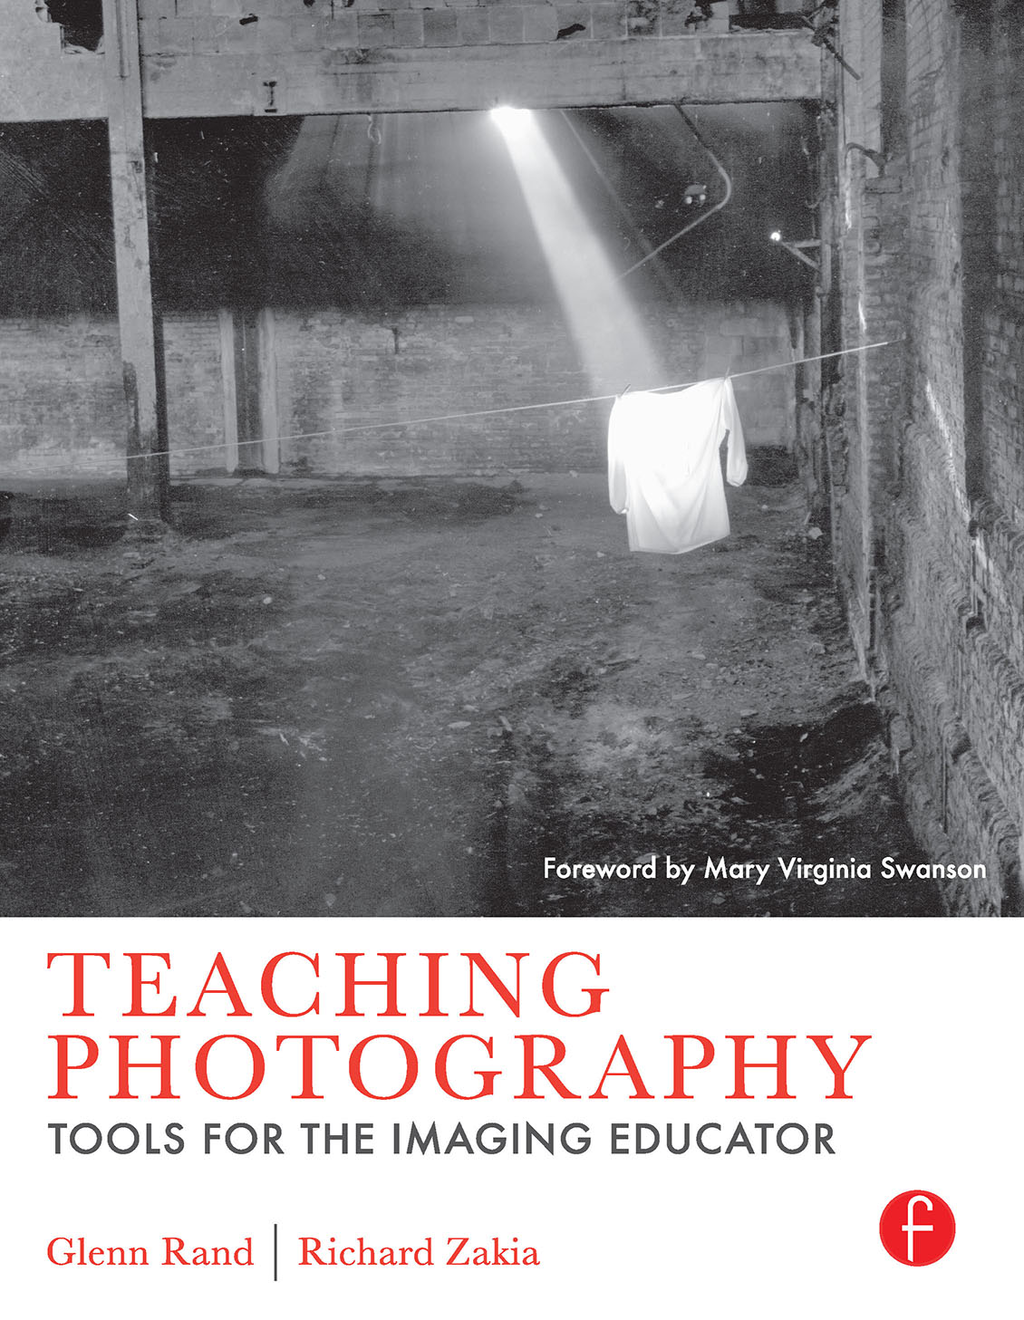 Teaching Photography Tools for the Imaging Educator